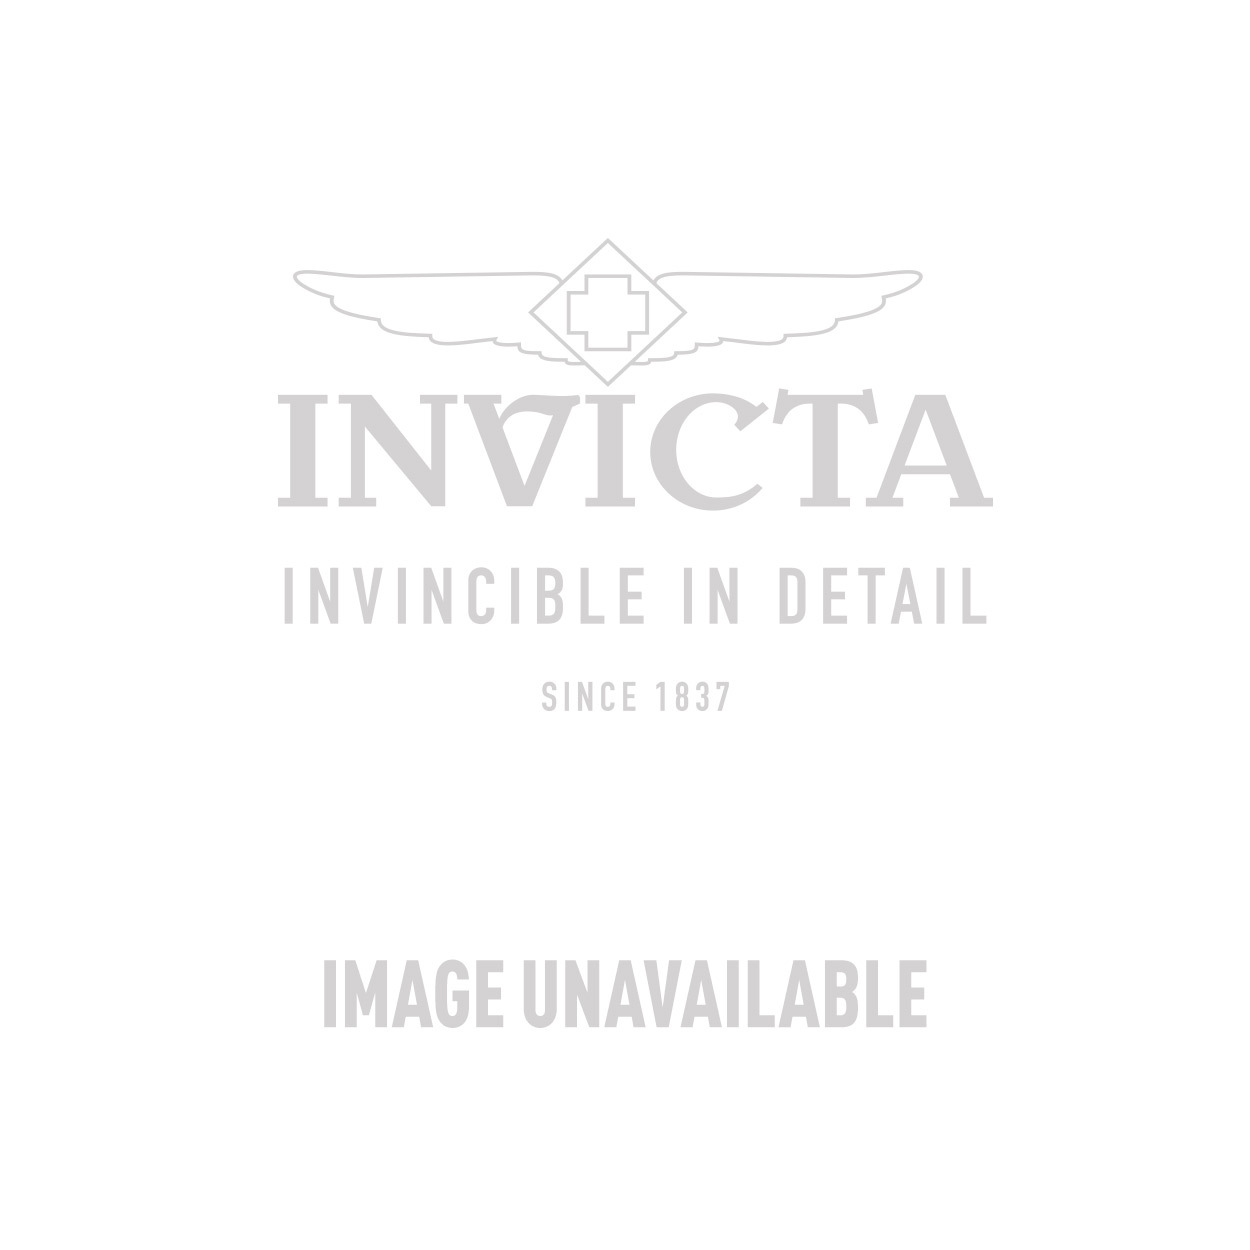 Invicta Sea Base Swiss Movement Quartz Watch - Gold case with Gold tone Stainless Steel band - Model 20364